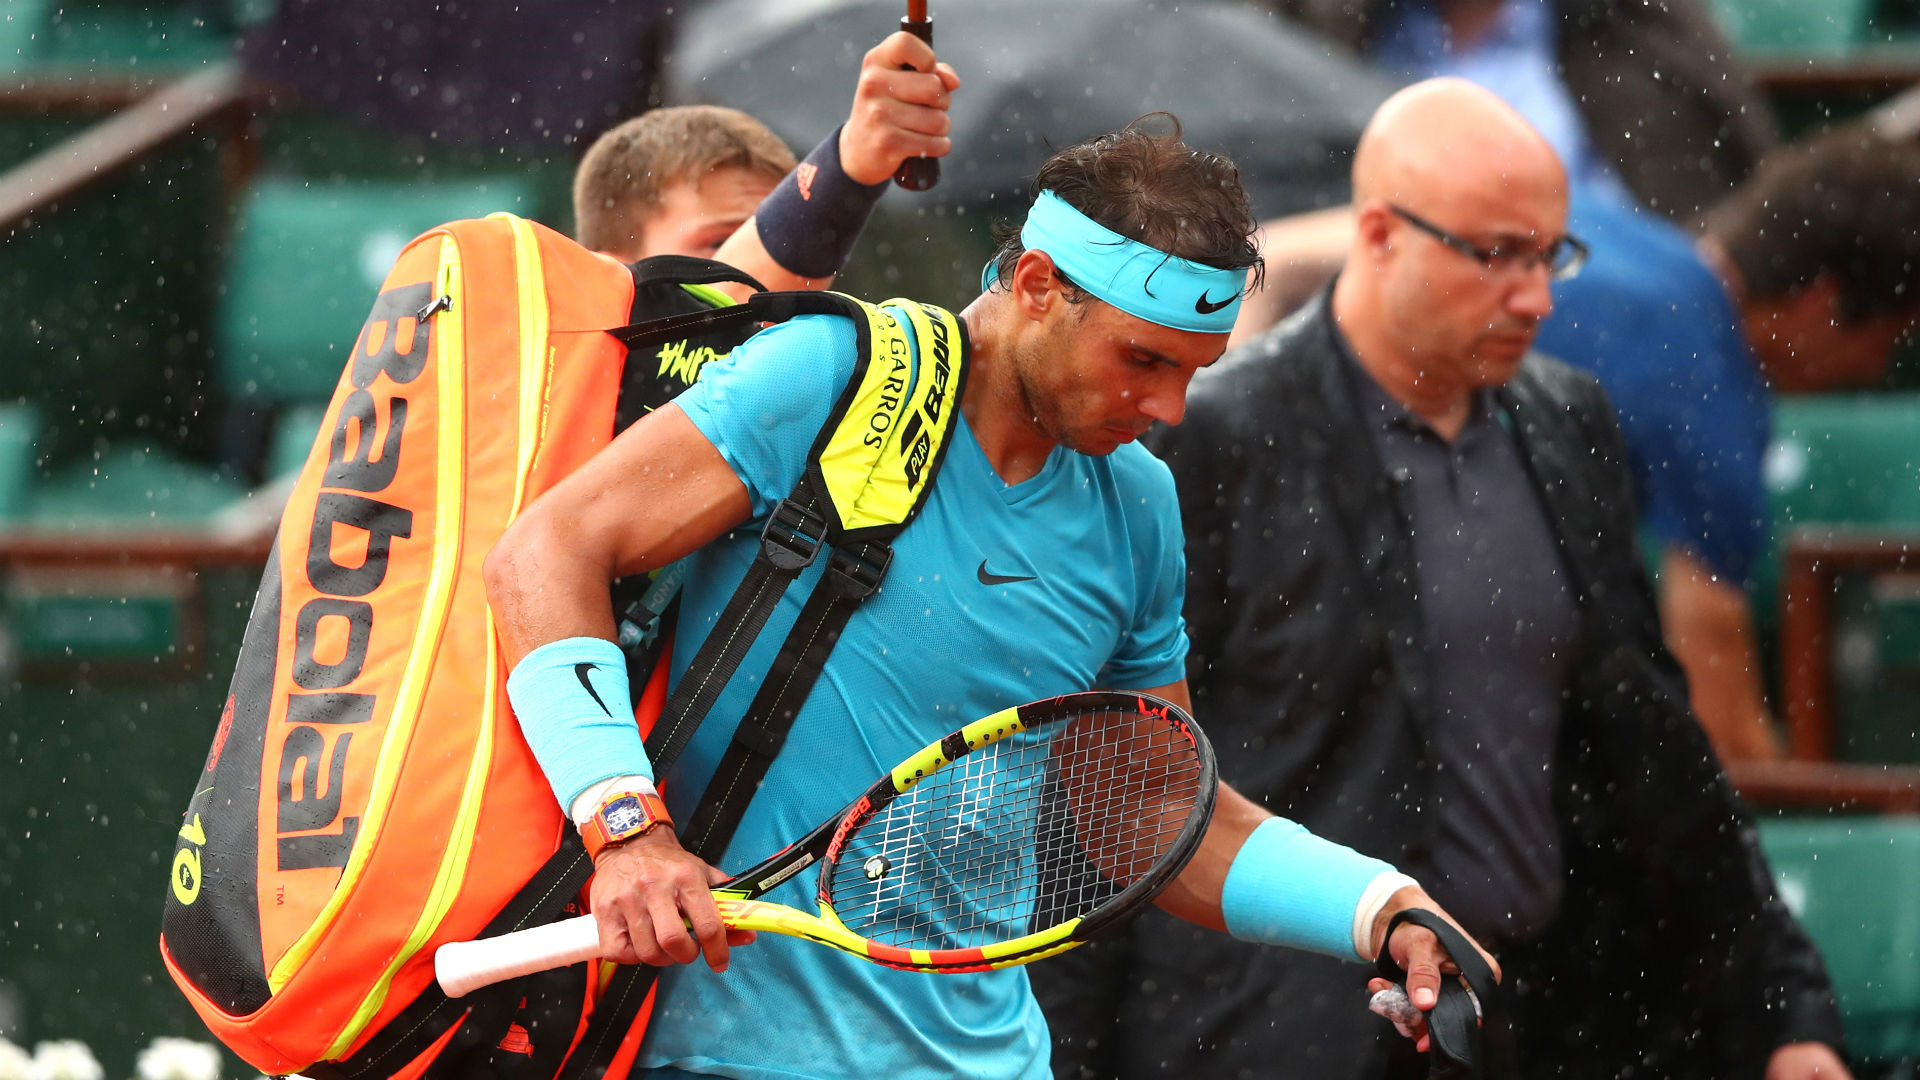 Nadal shows champion qualities to bounce back and book semi final place